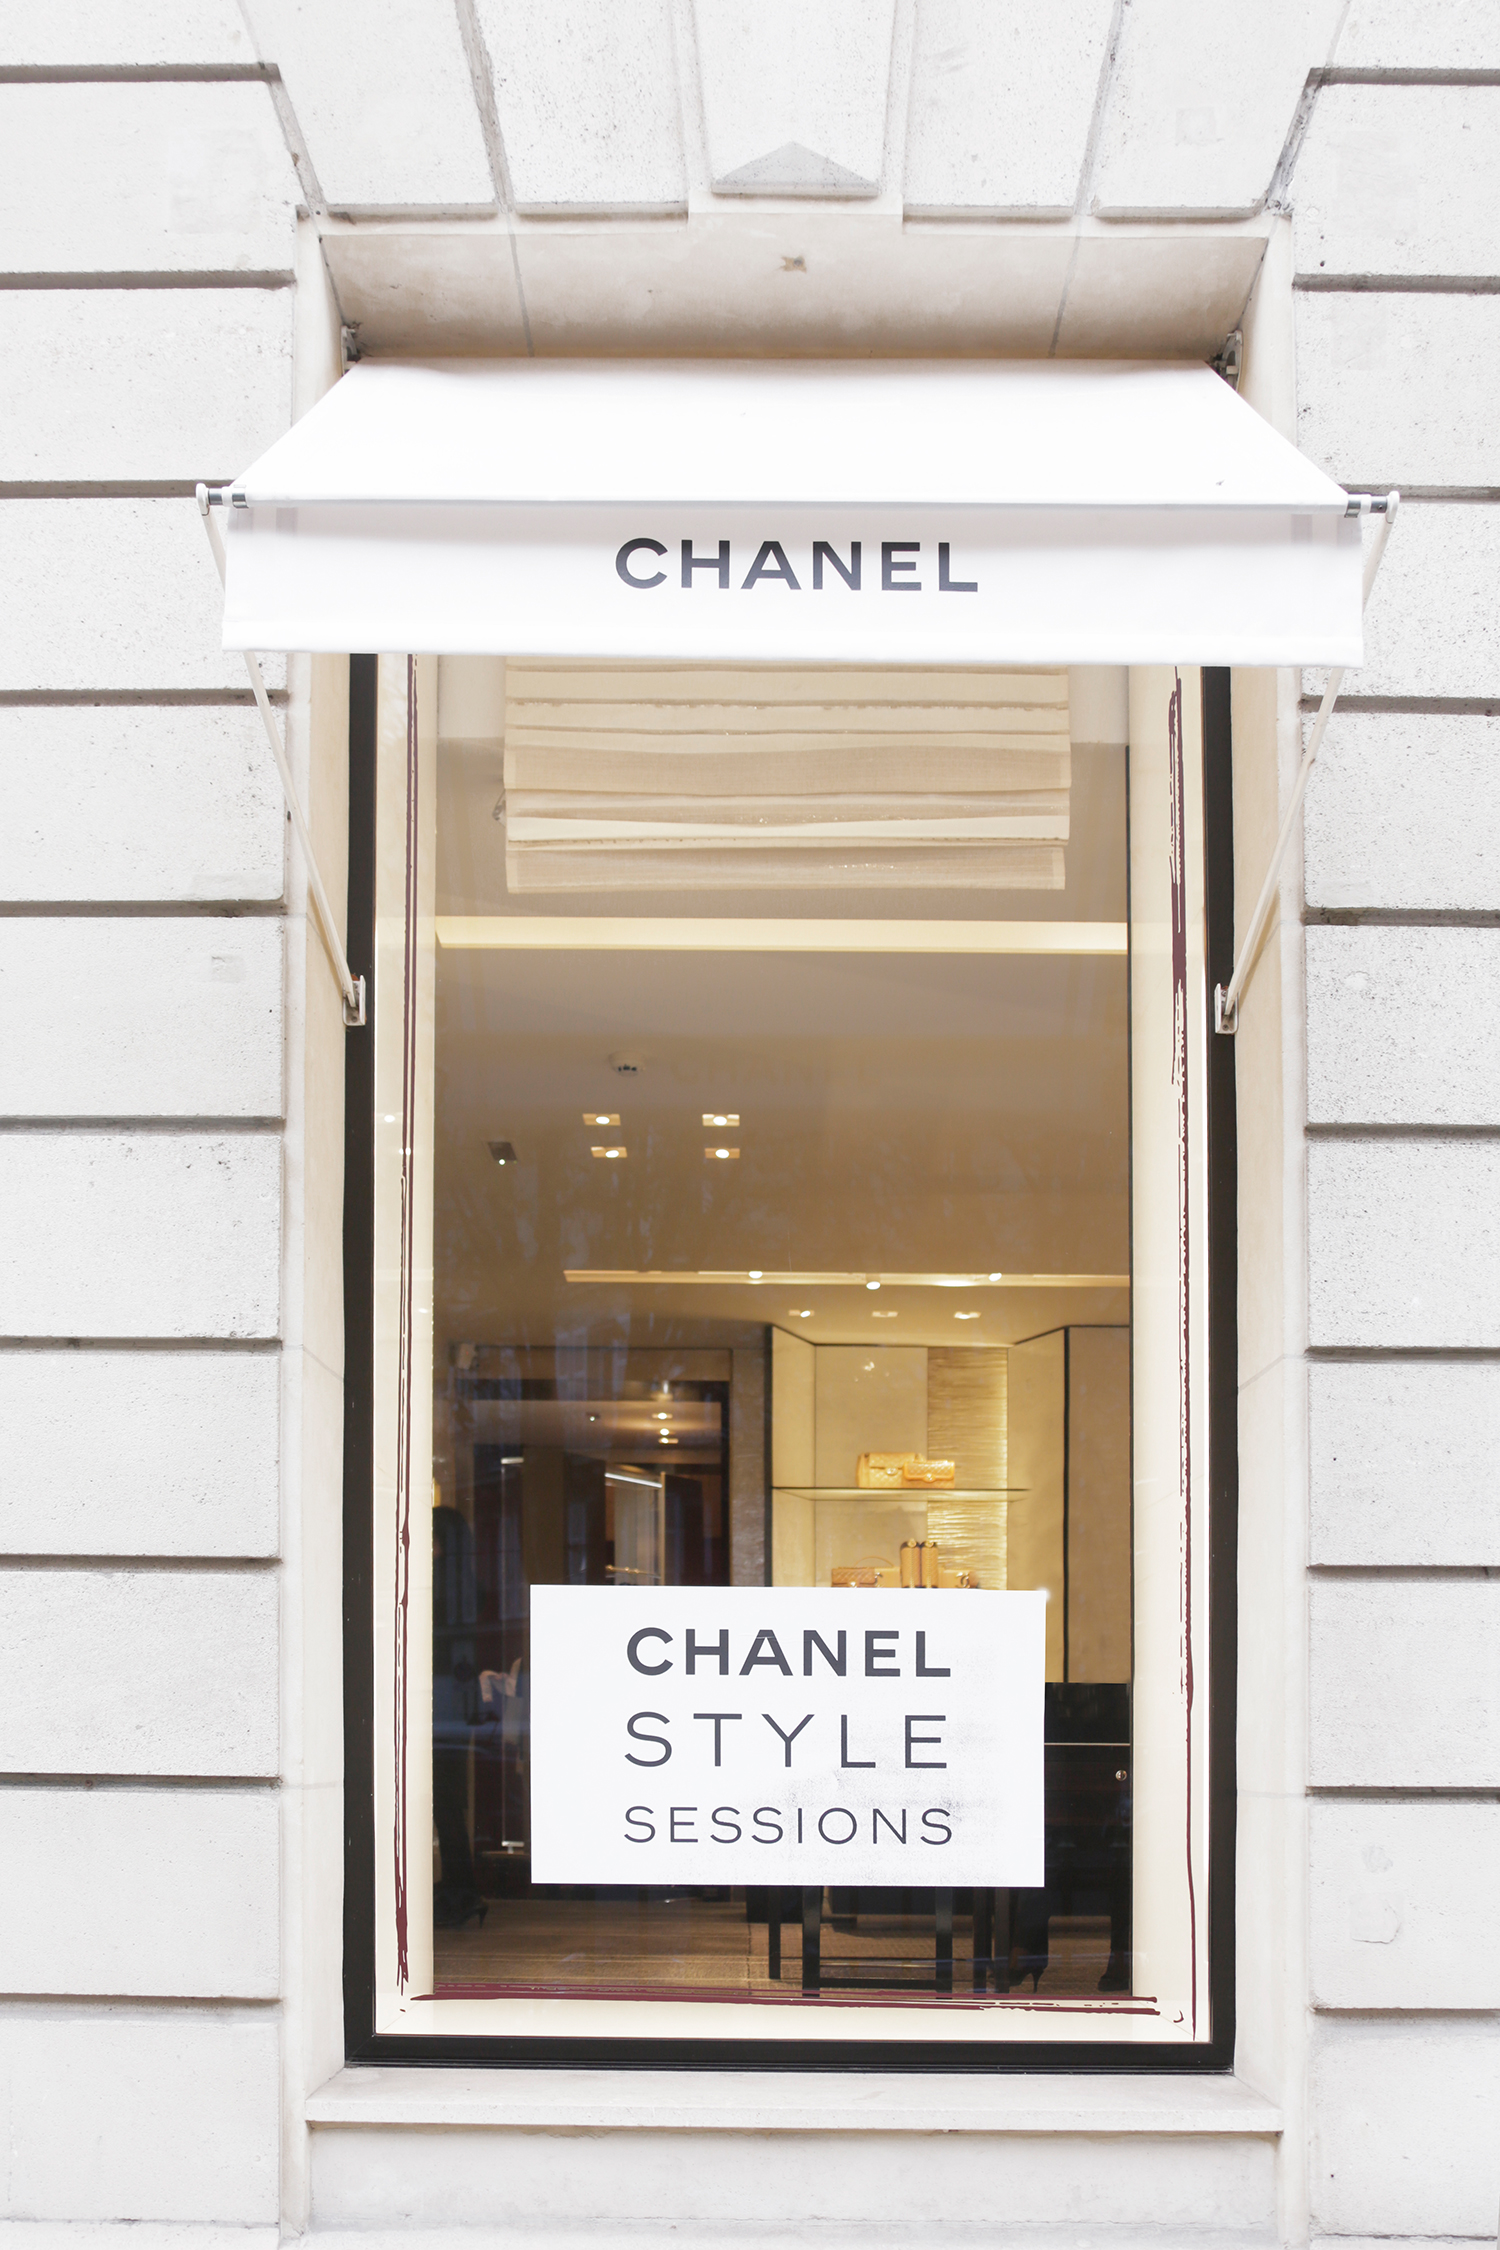 03_CHANEL-STYLE-SESSIONS---51-avenue-Montaigne-boutique_LD